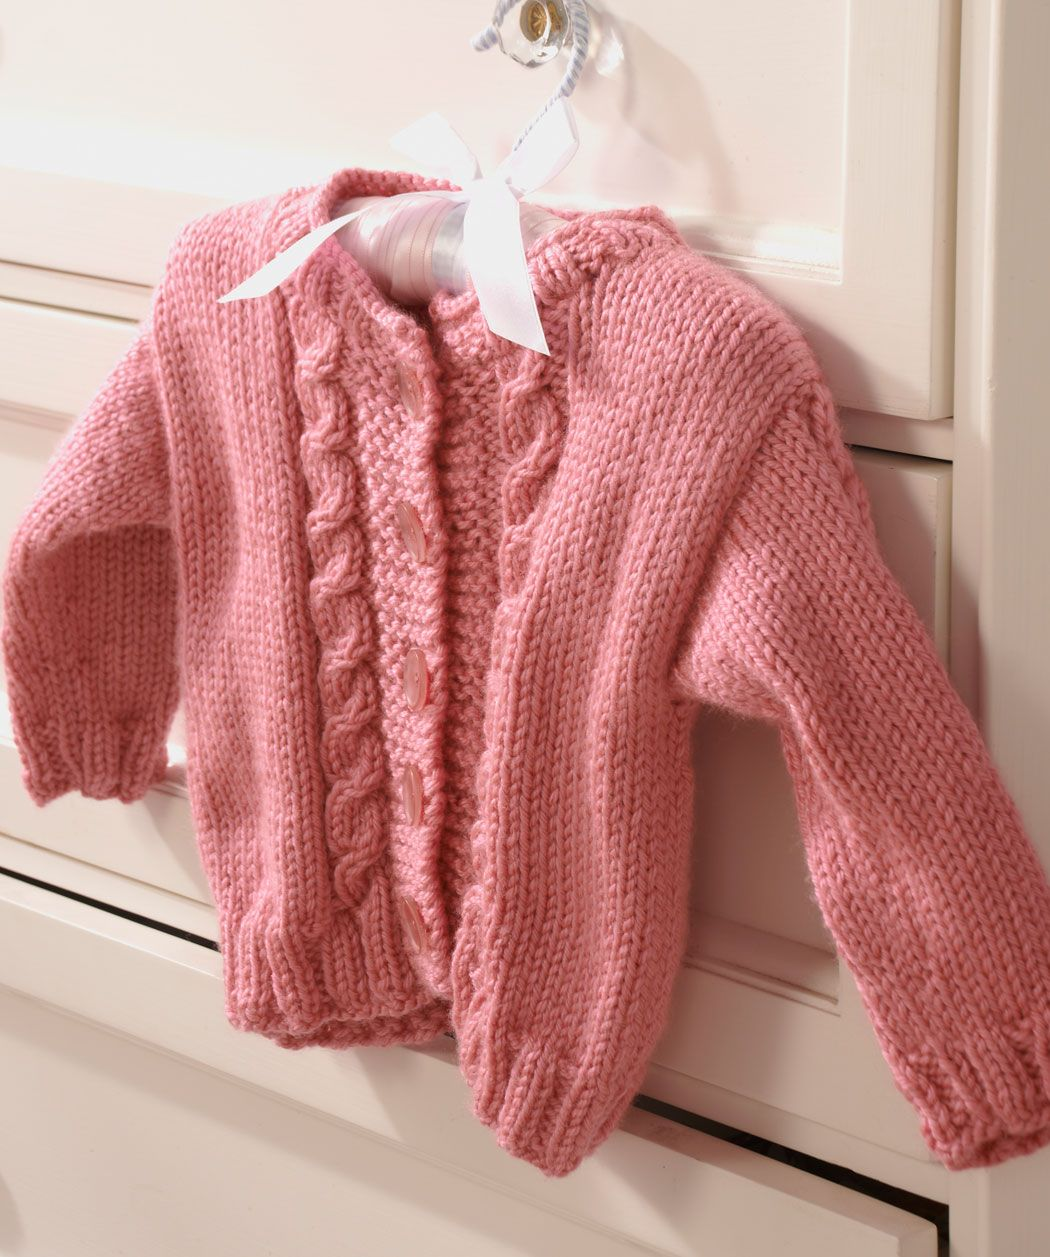 Princess cardigan free pattern knitting pinterest free princess cardigan free knitting pattern from red heart yarns size 6 months bankloansurffo Choice Image